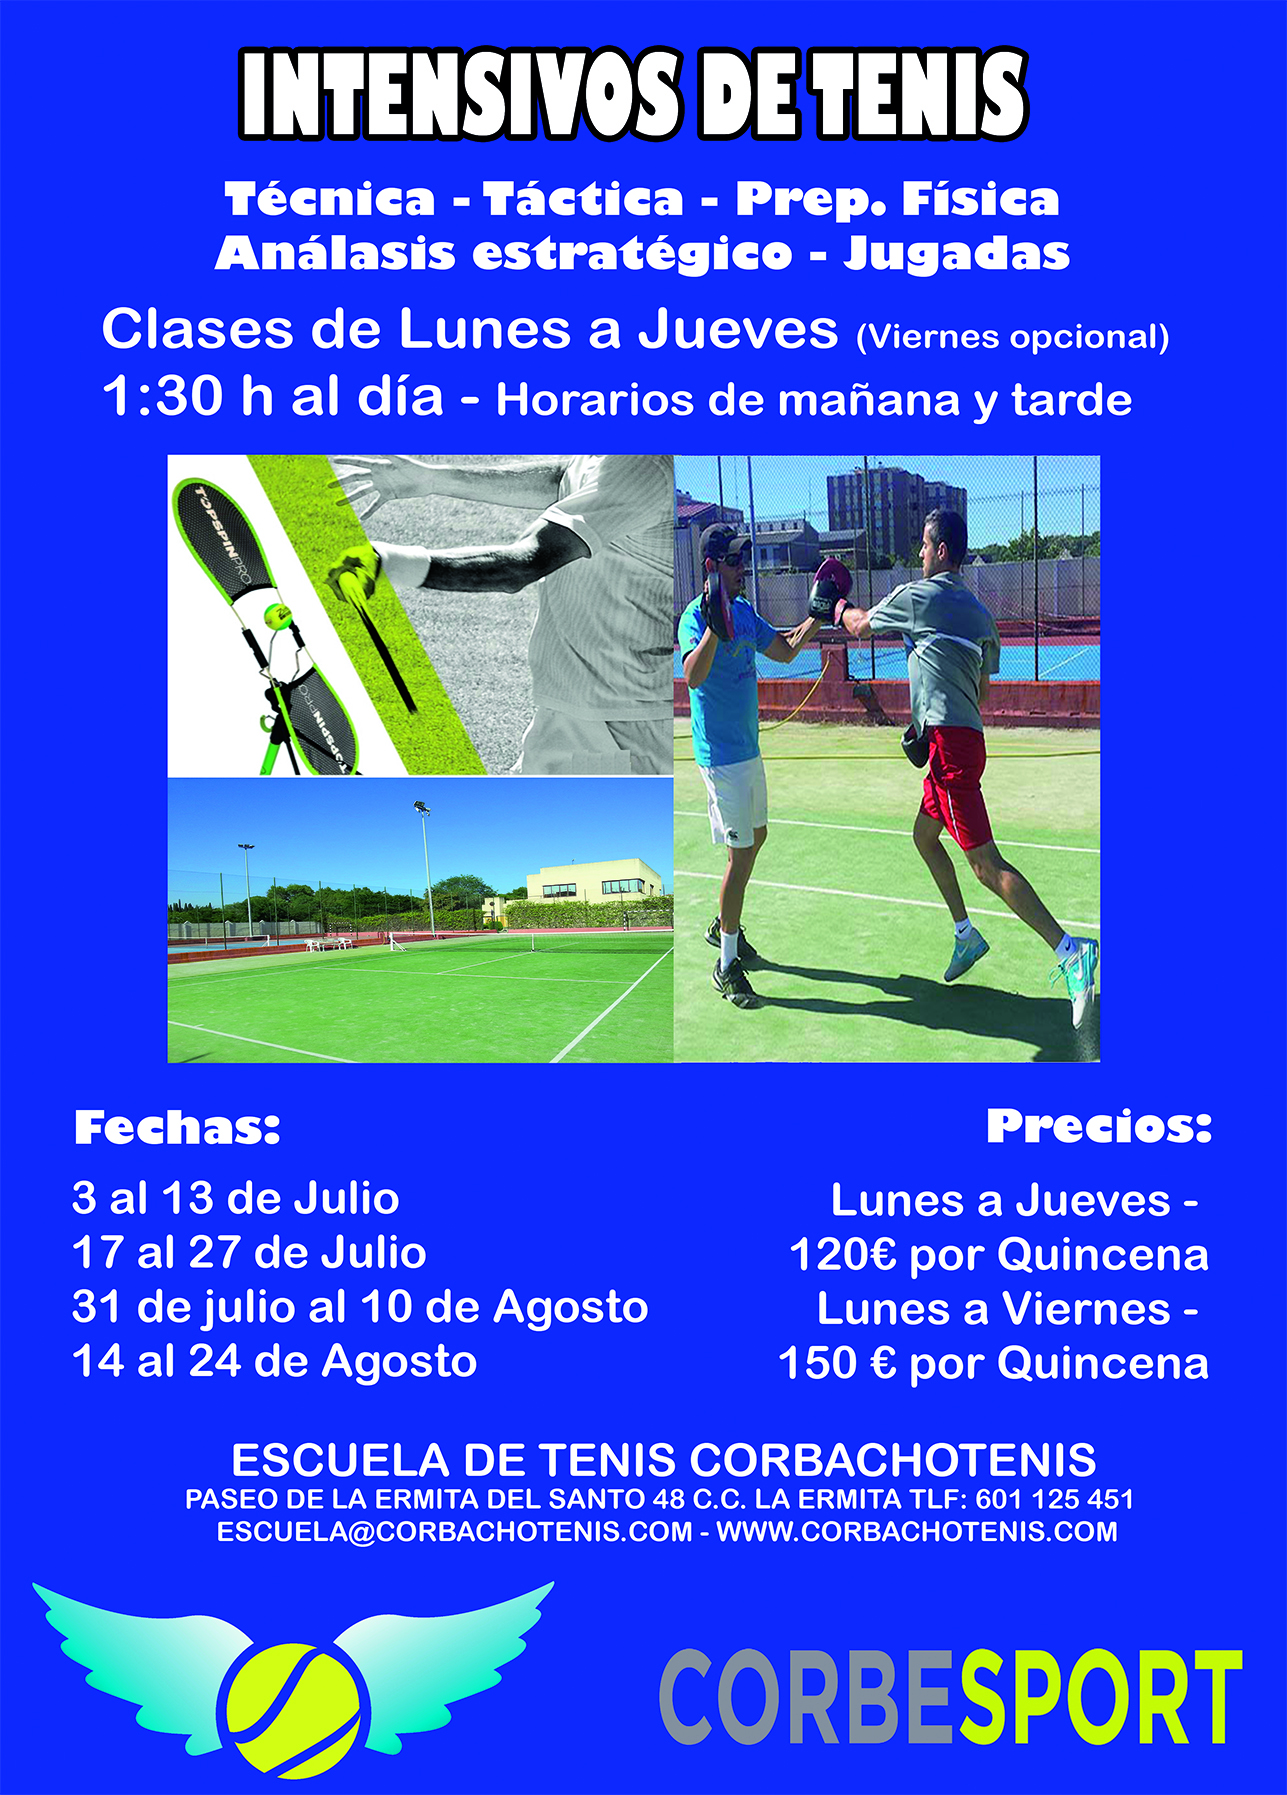 Cursos intensivos tenis madrid